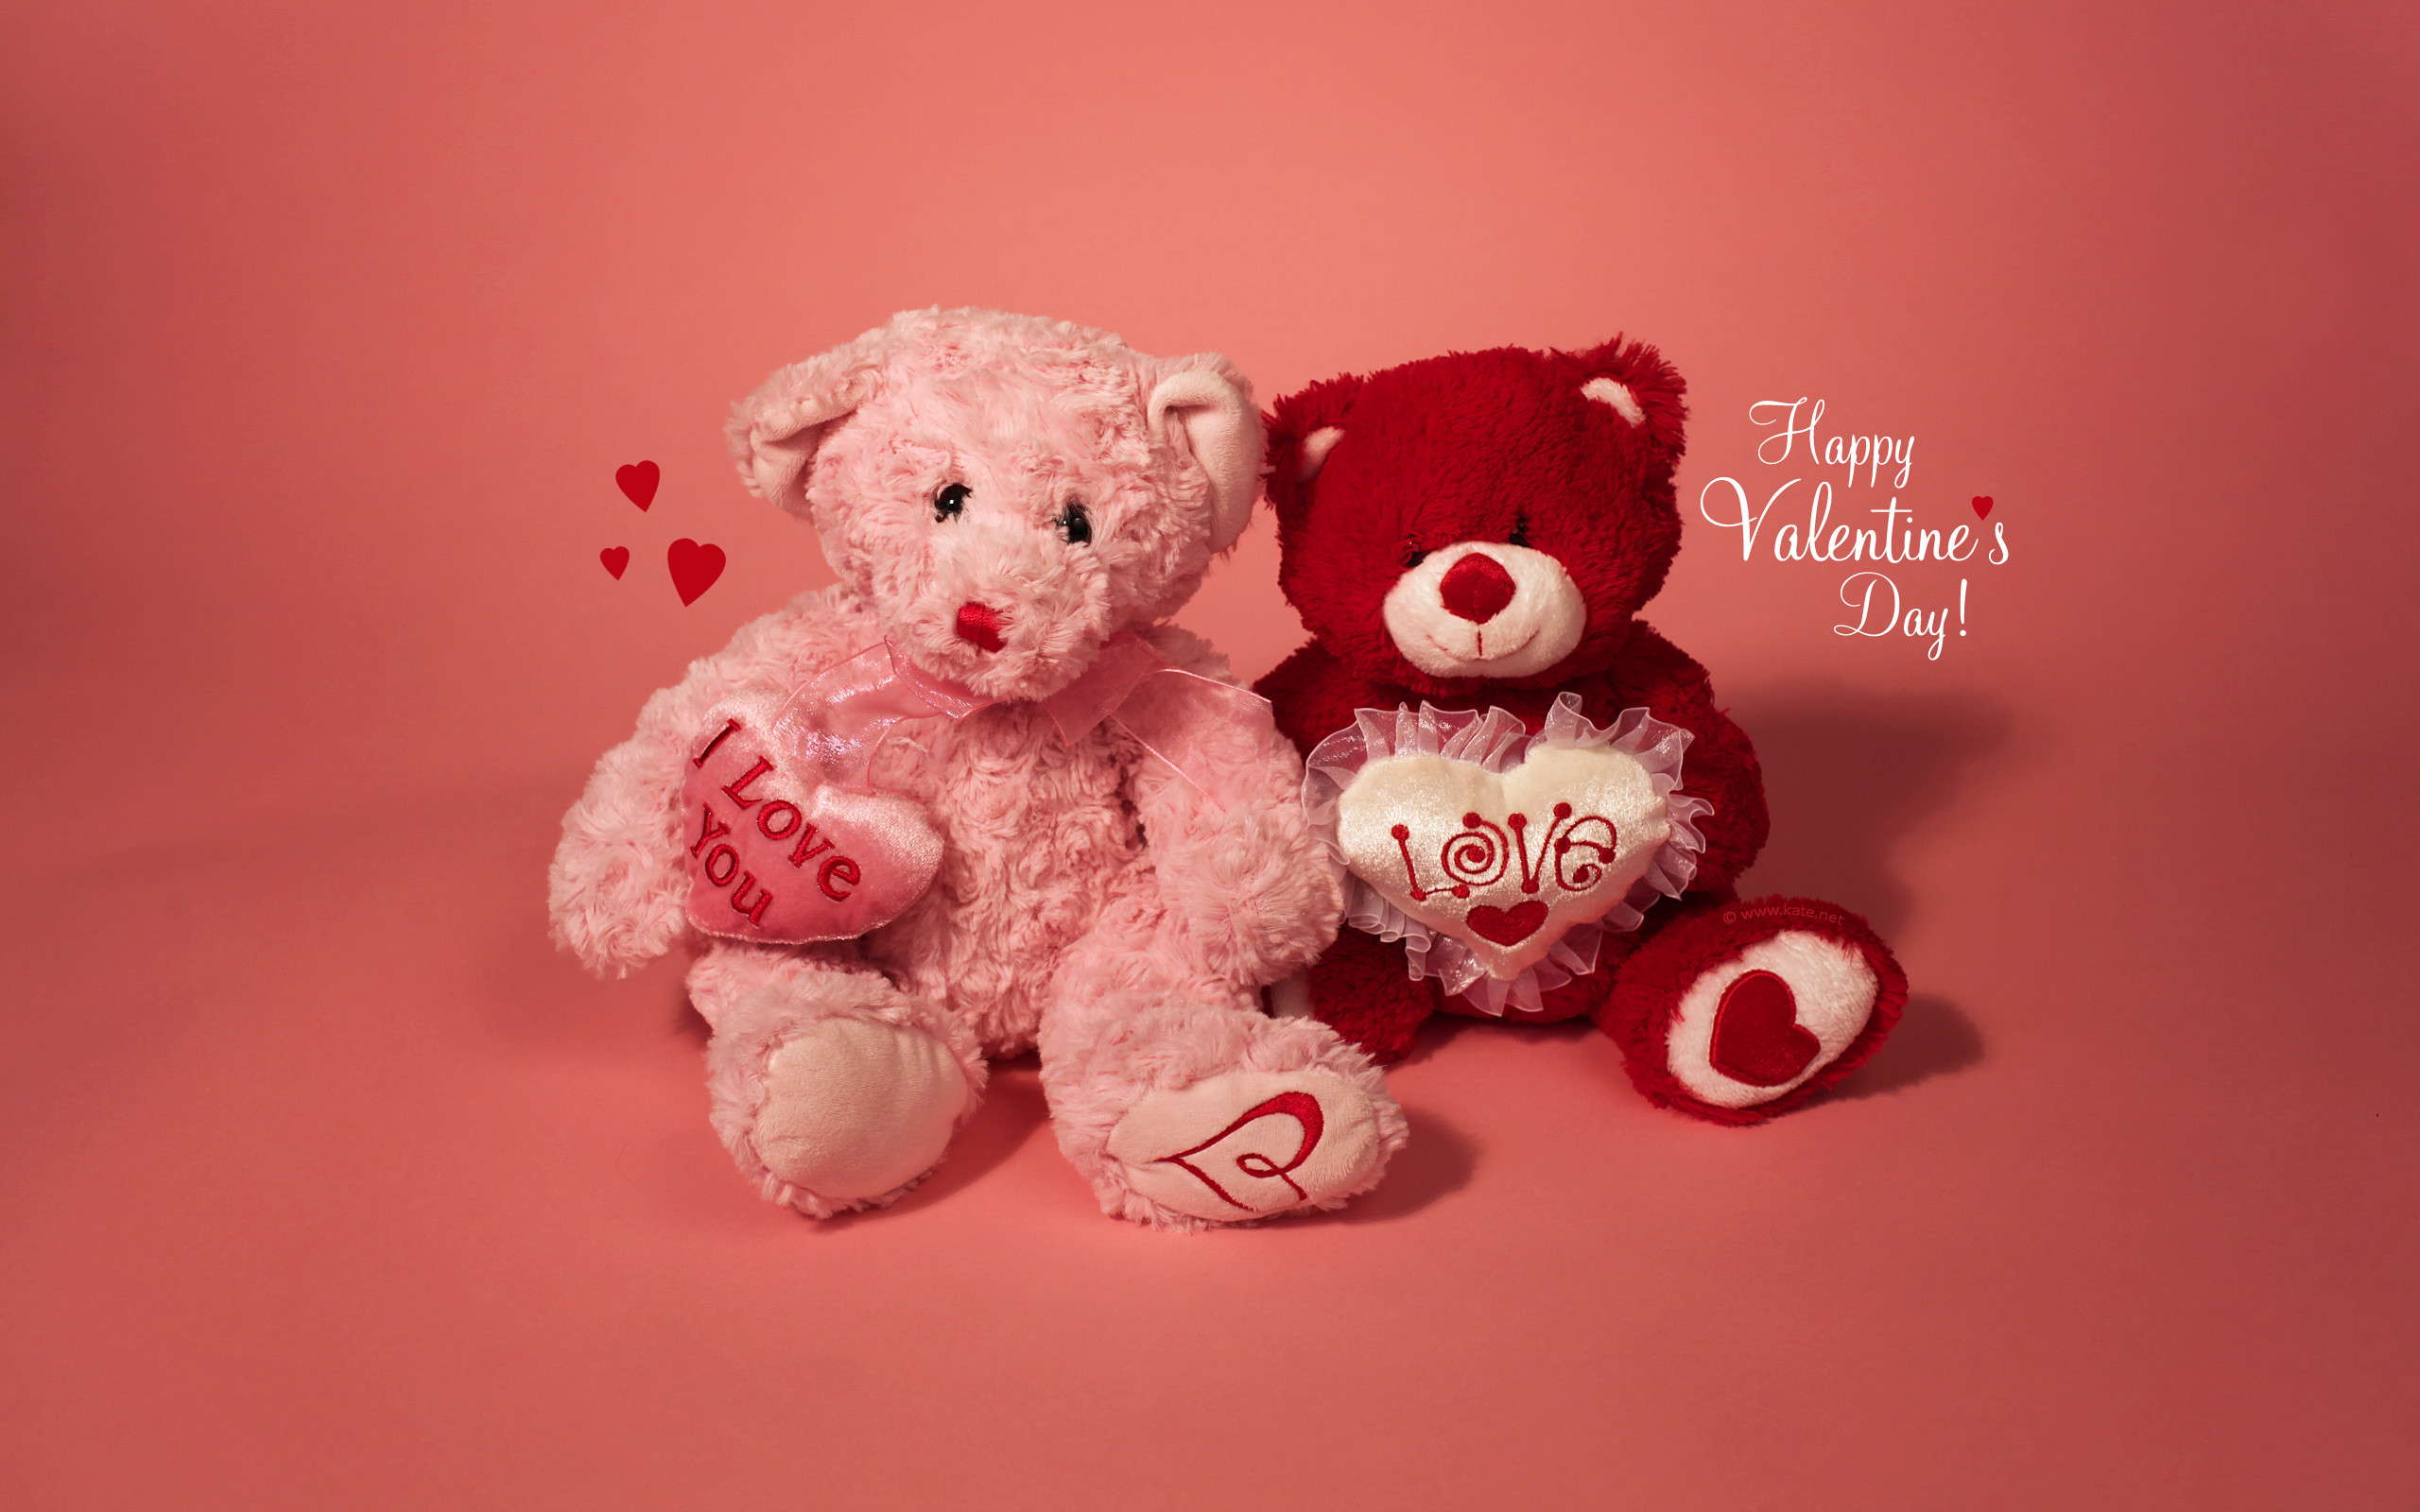 Teddy bears, Happy Valentine's Day, Love You, …